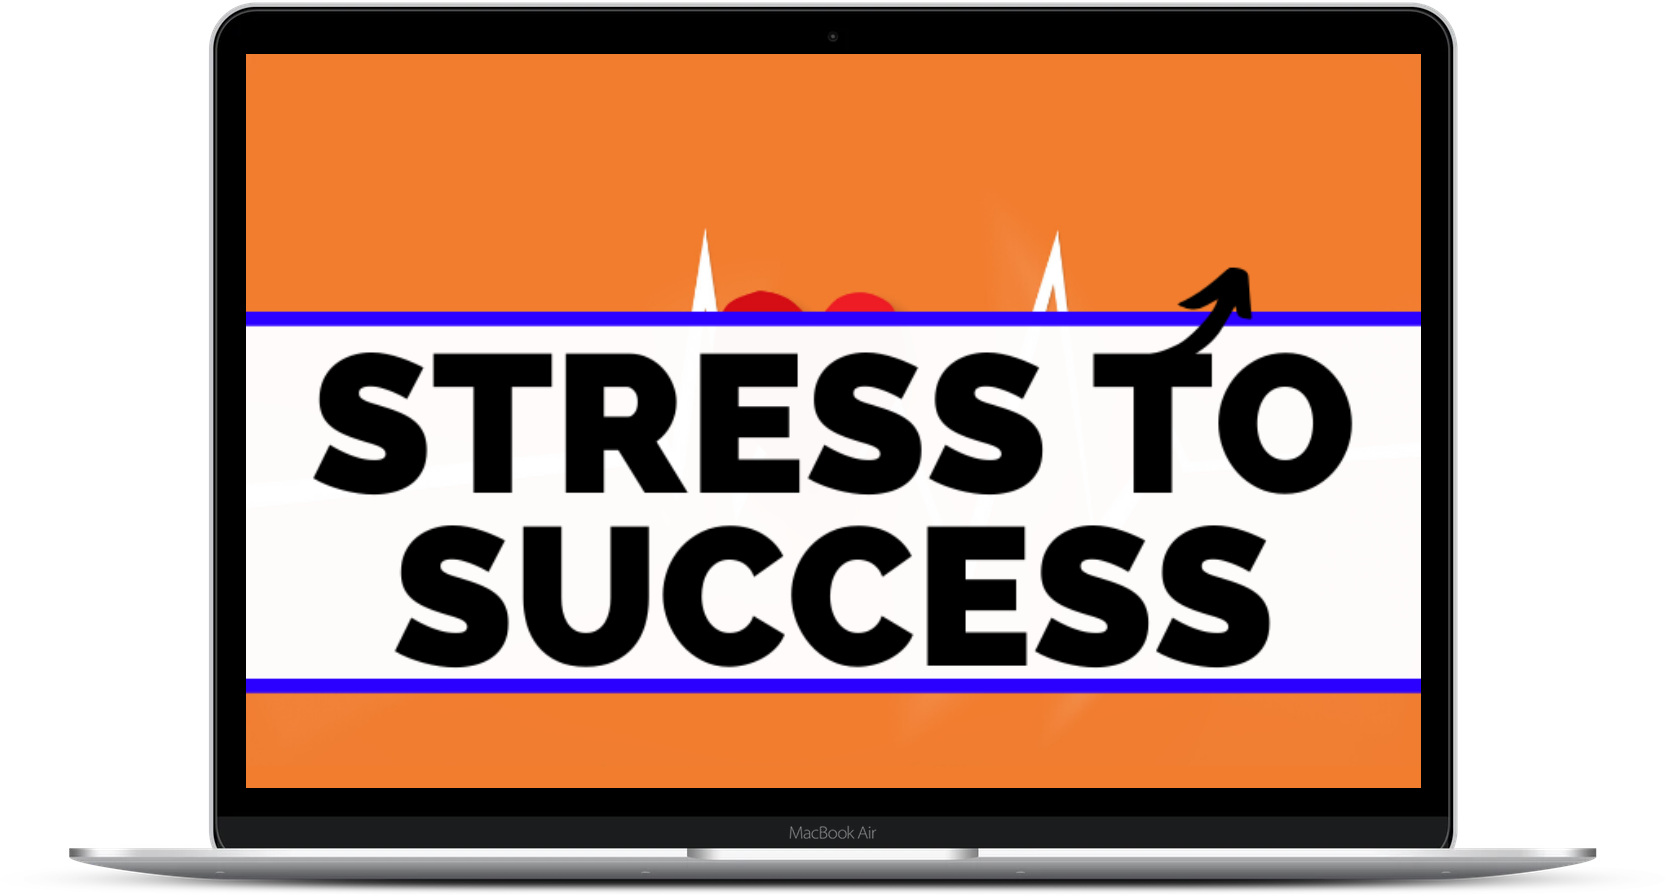 Stress To Success - TheMDJourney.com